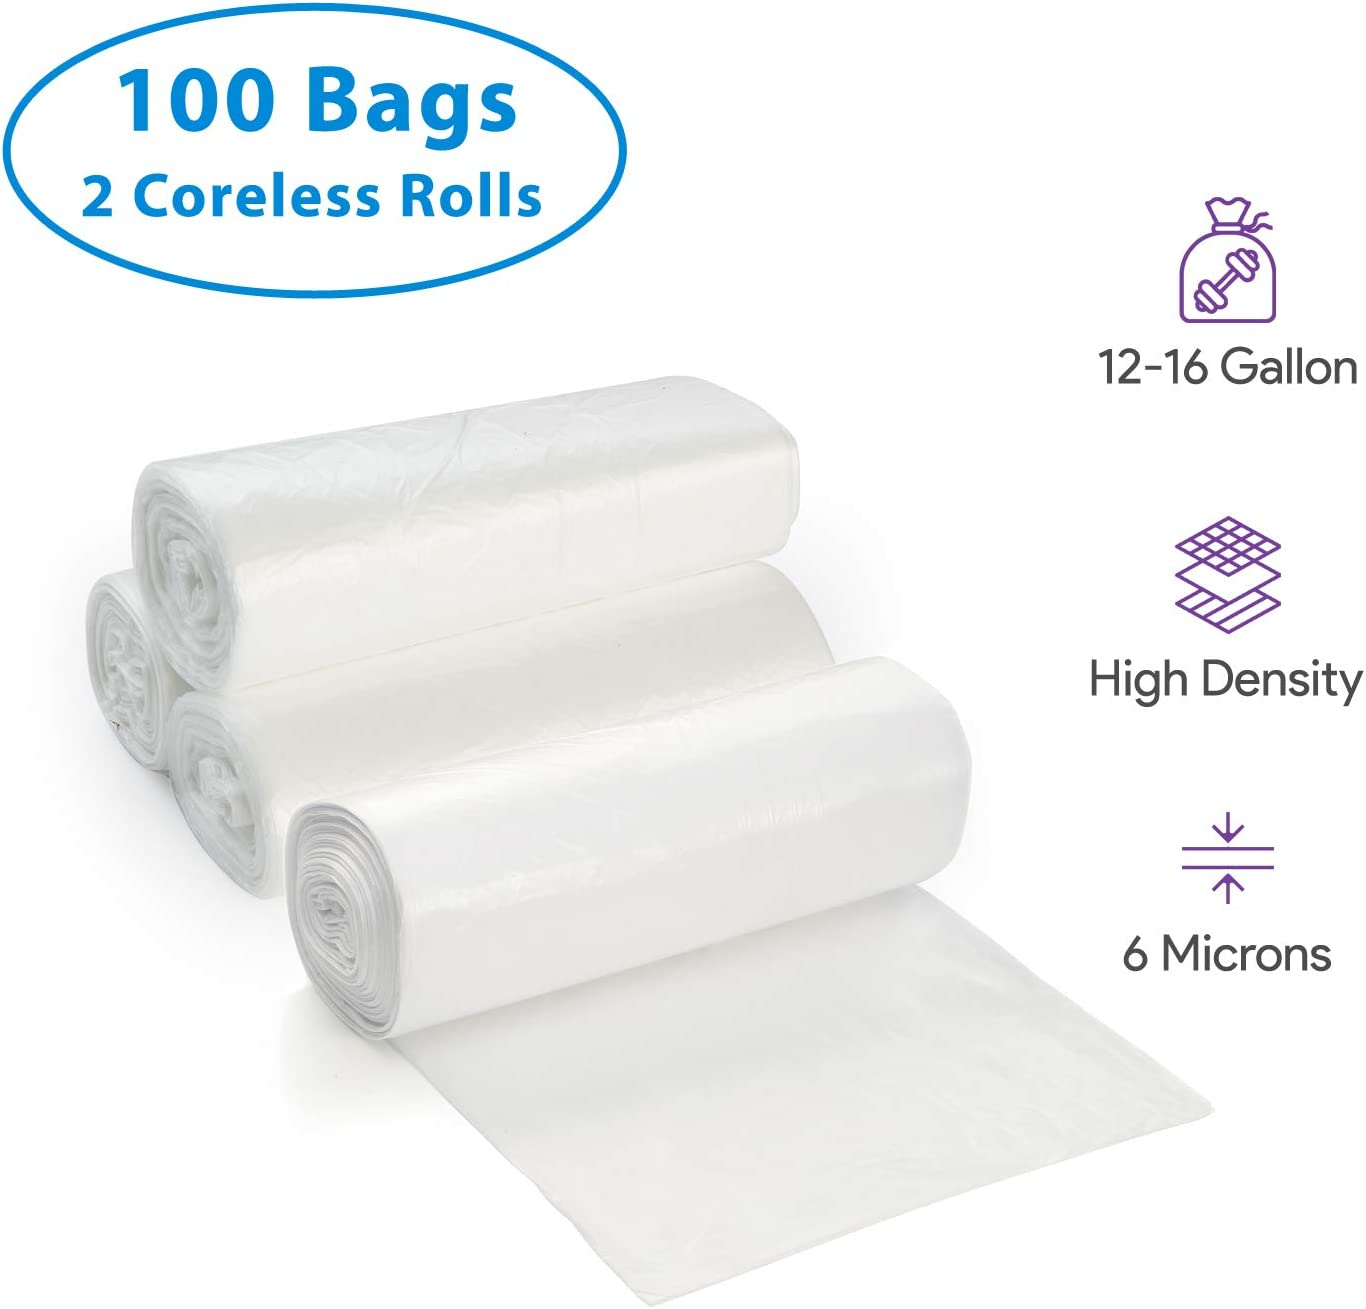 12-16 Gallon Clear Garbage Can Liners, 100 Count - Medium - Large Trash Can Liners - High Density, Thin, Lightweight, 6 Microns - For Office, Home, Hospital, Wastebaskets - 2 Coreless Rolls